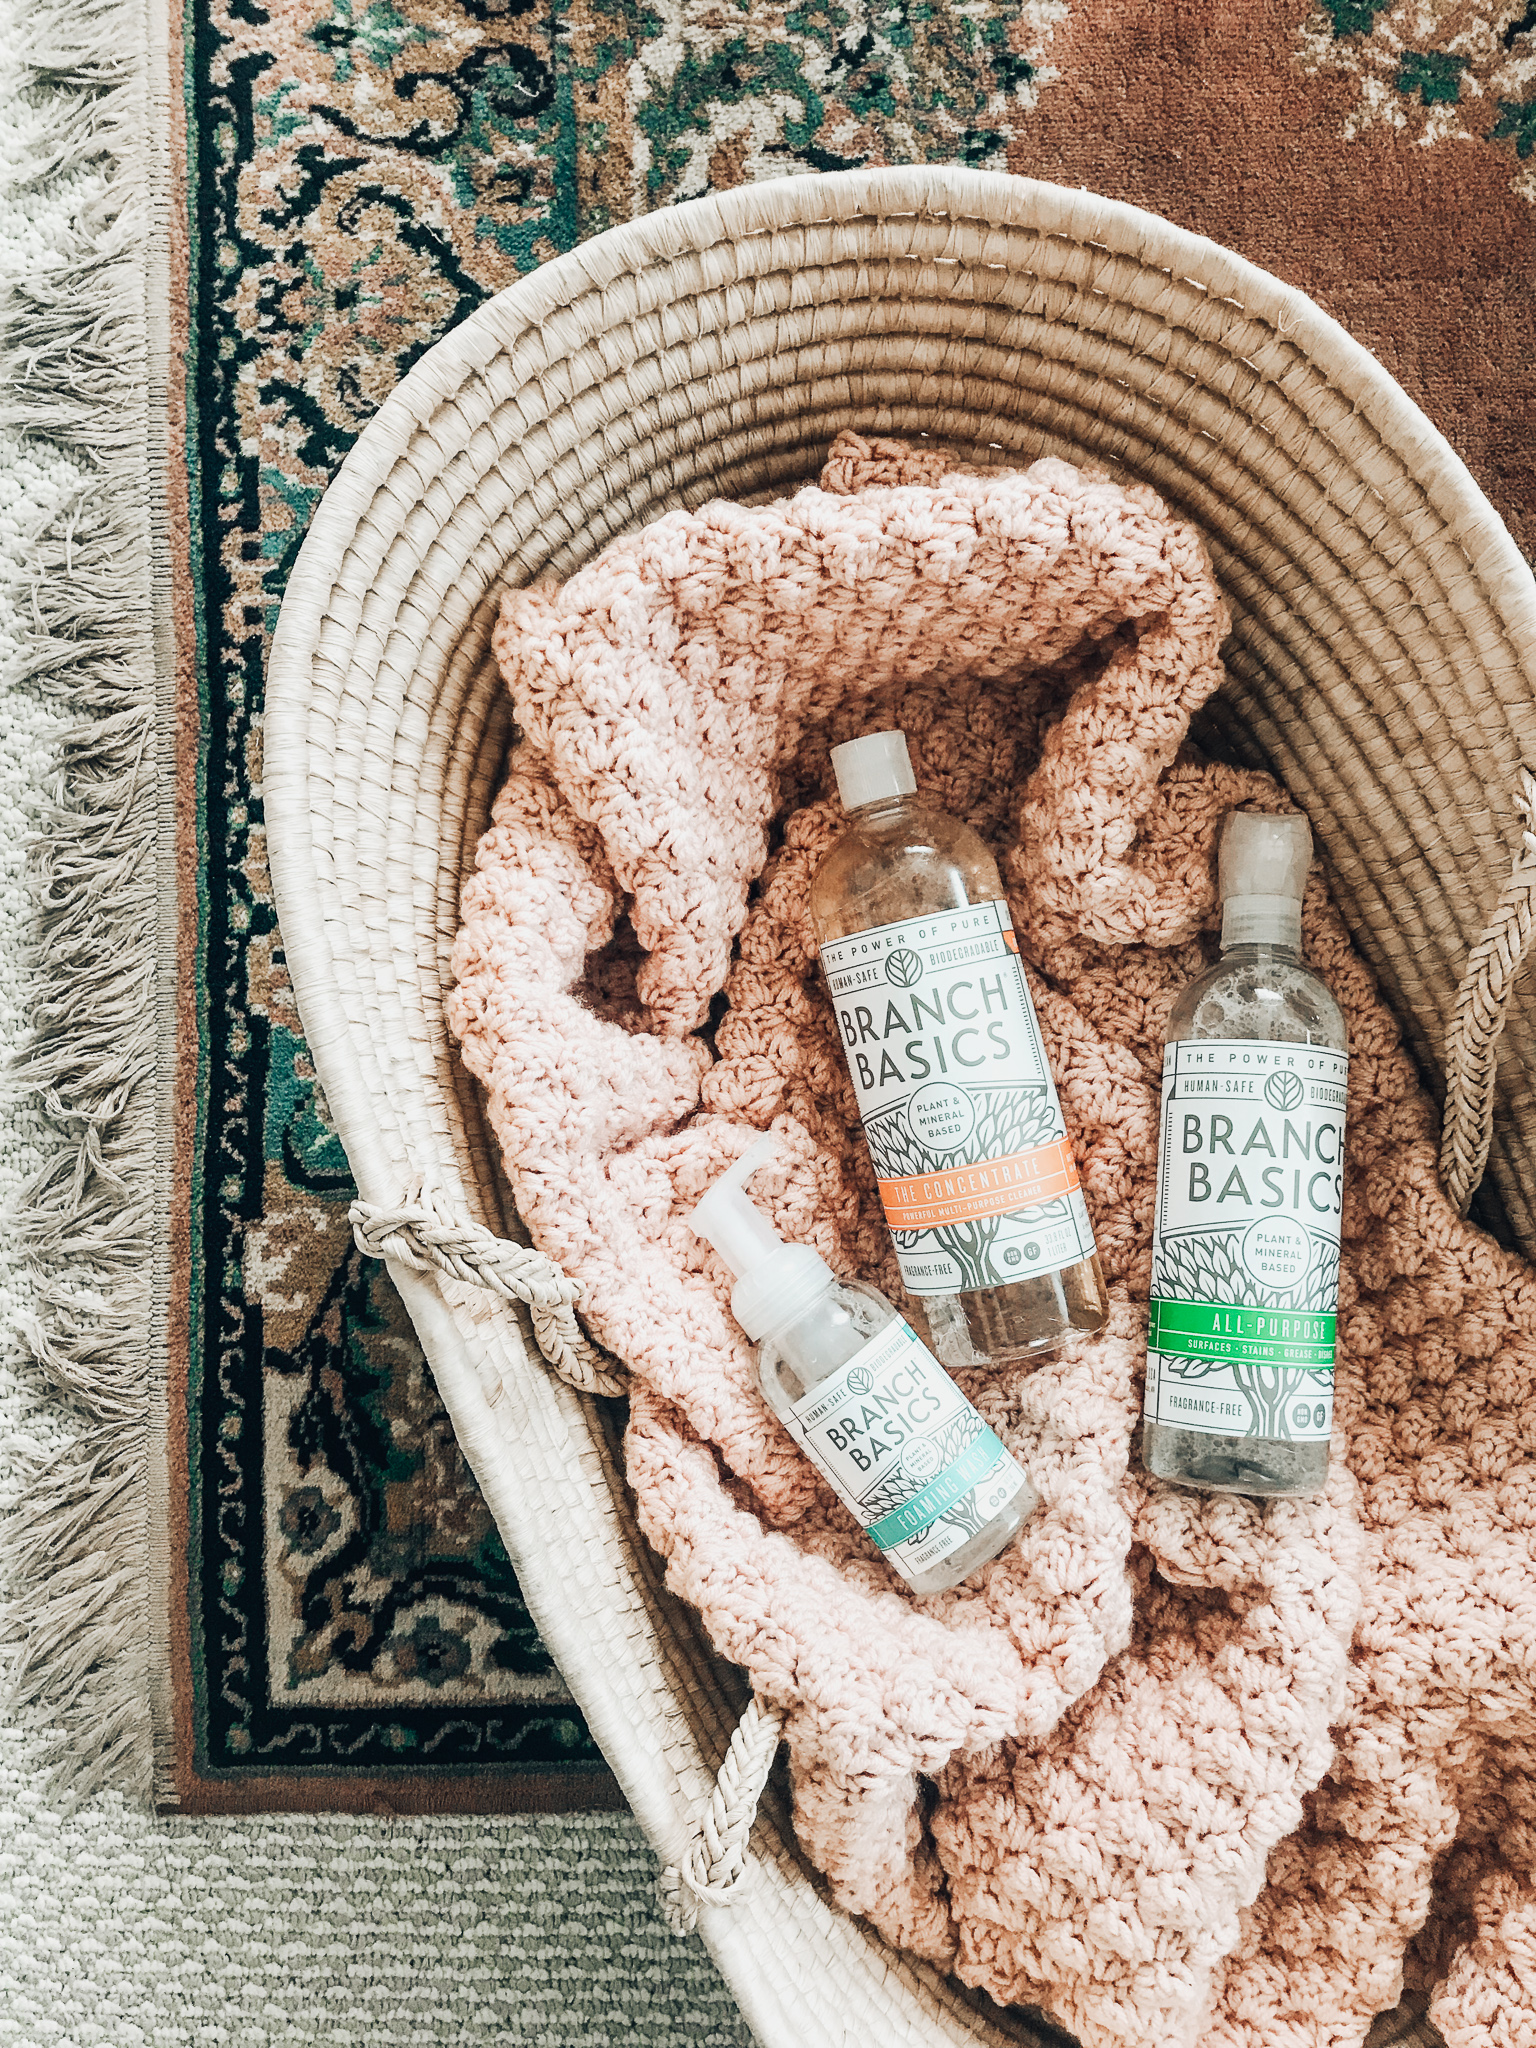 5 Easy Ways to Embrace Non-Toxic Living